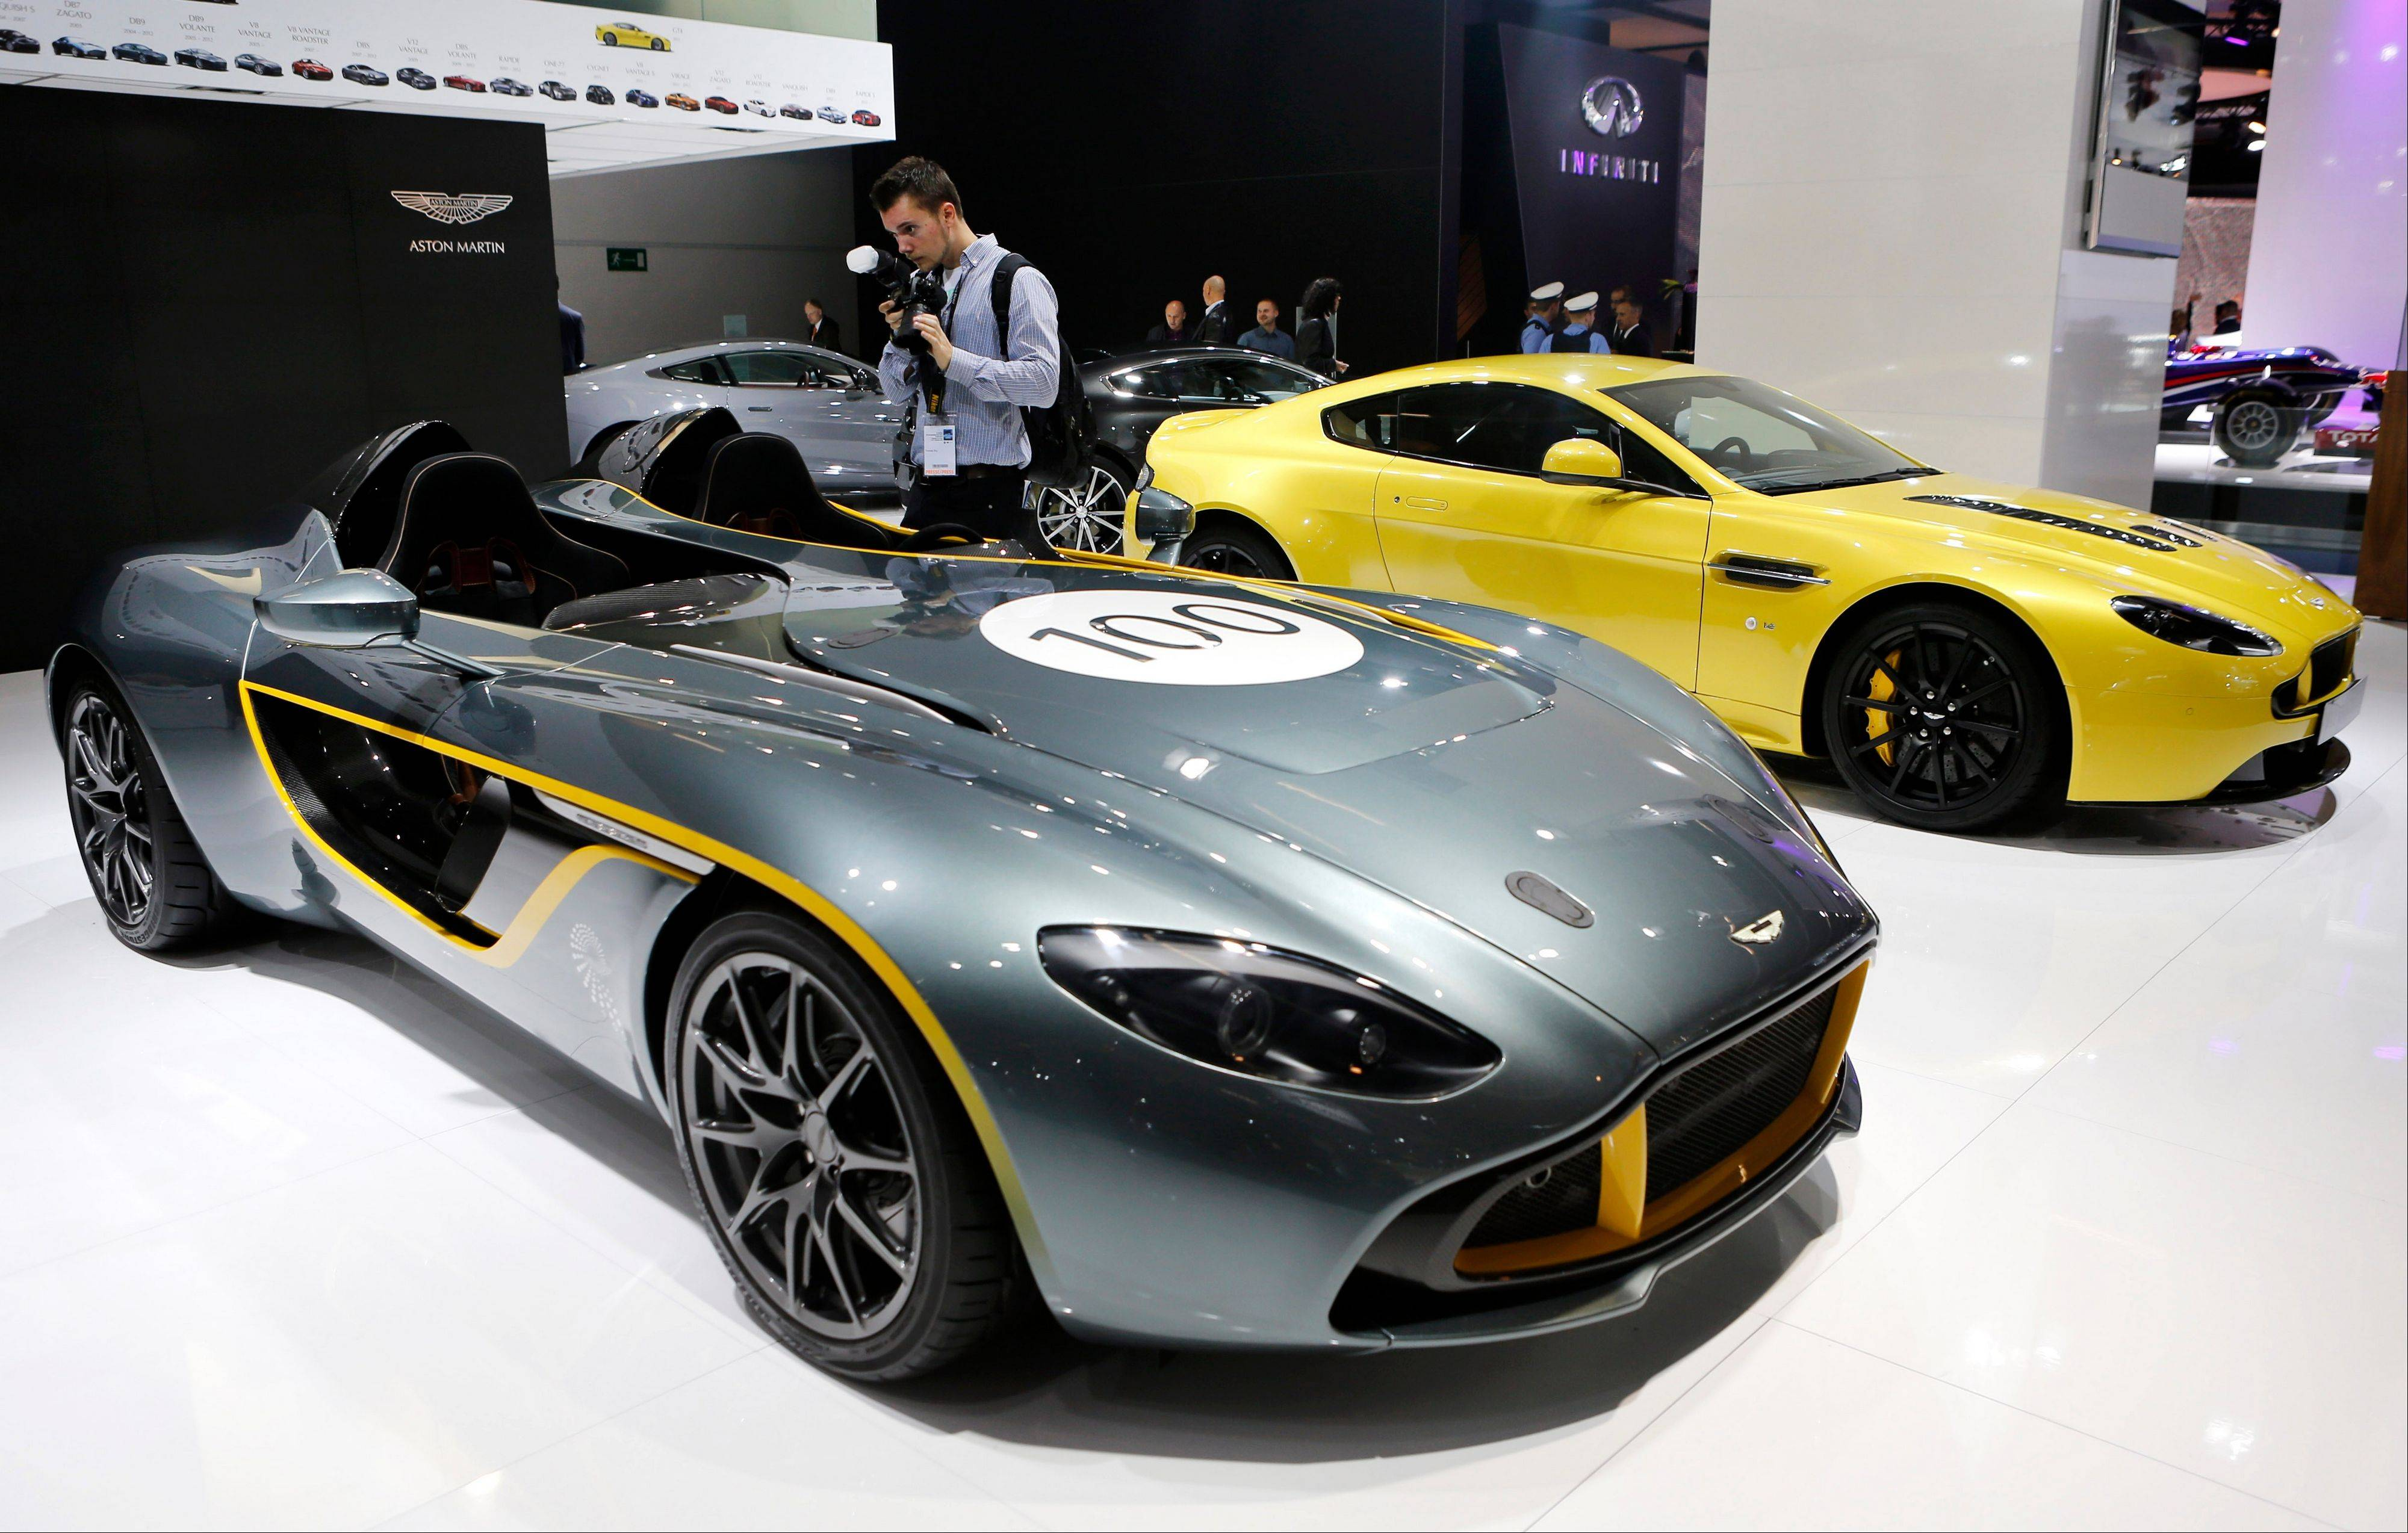 The Aston Martin 100 is presented during the second press day of the 65th Frankfurt Auto Show in Frankfurt, Germany.